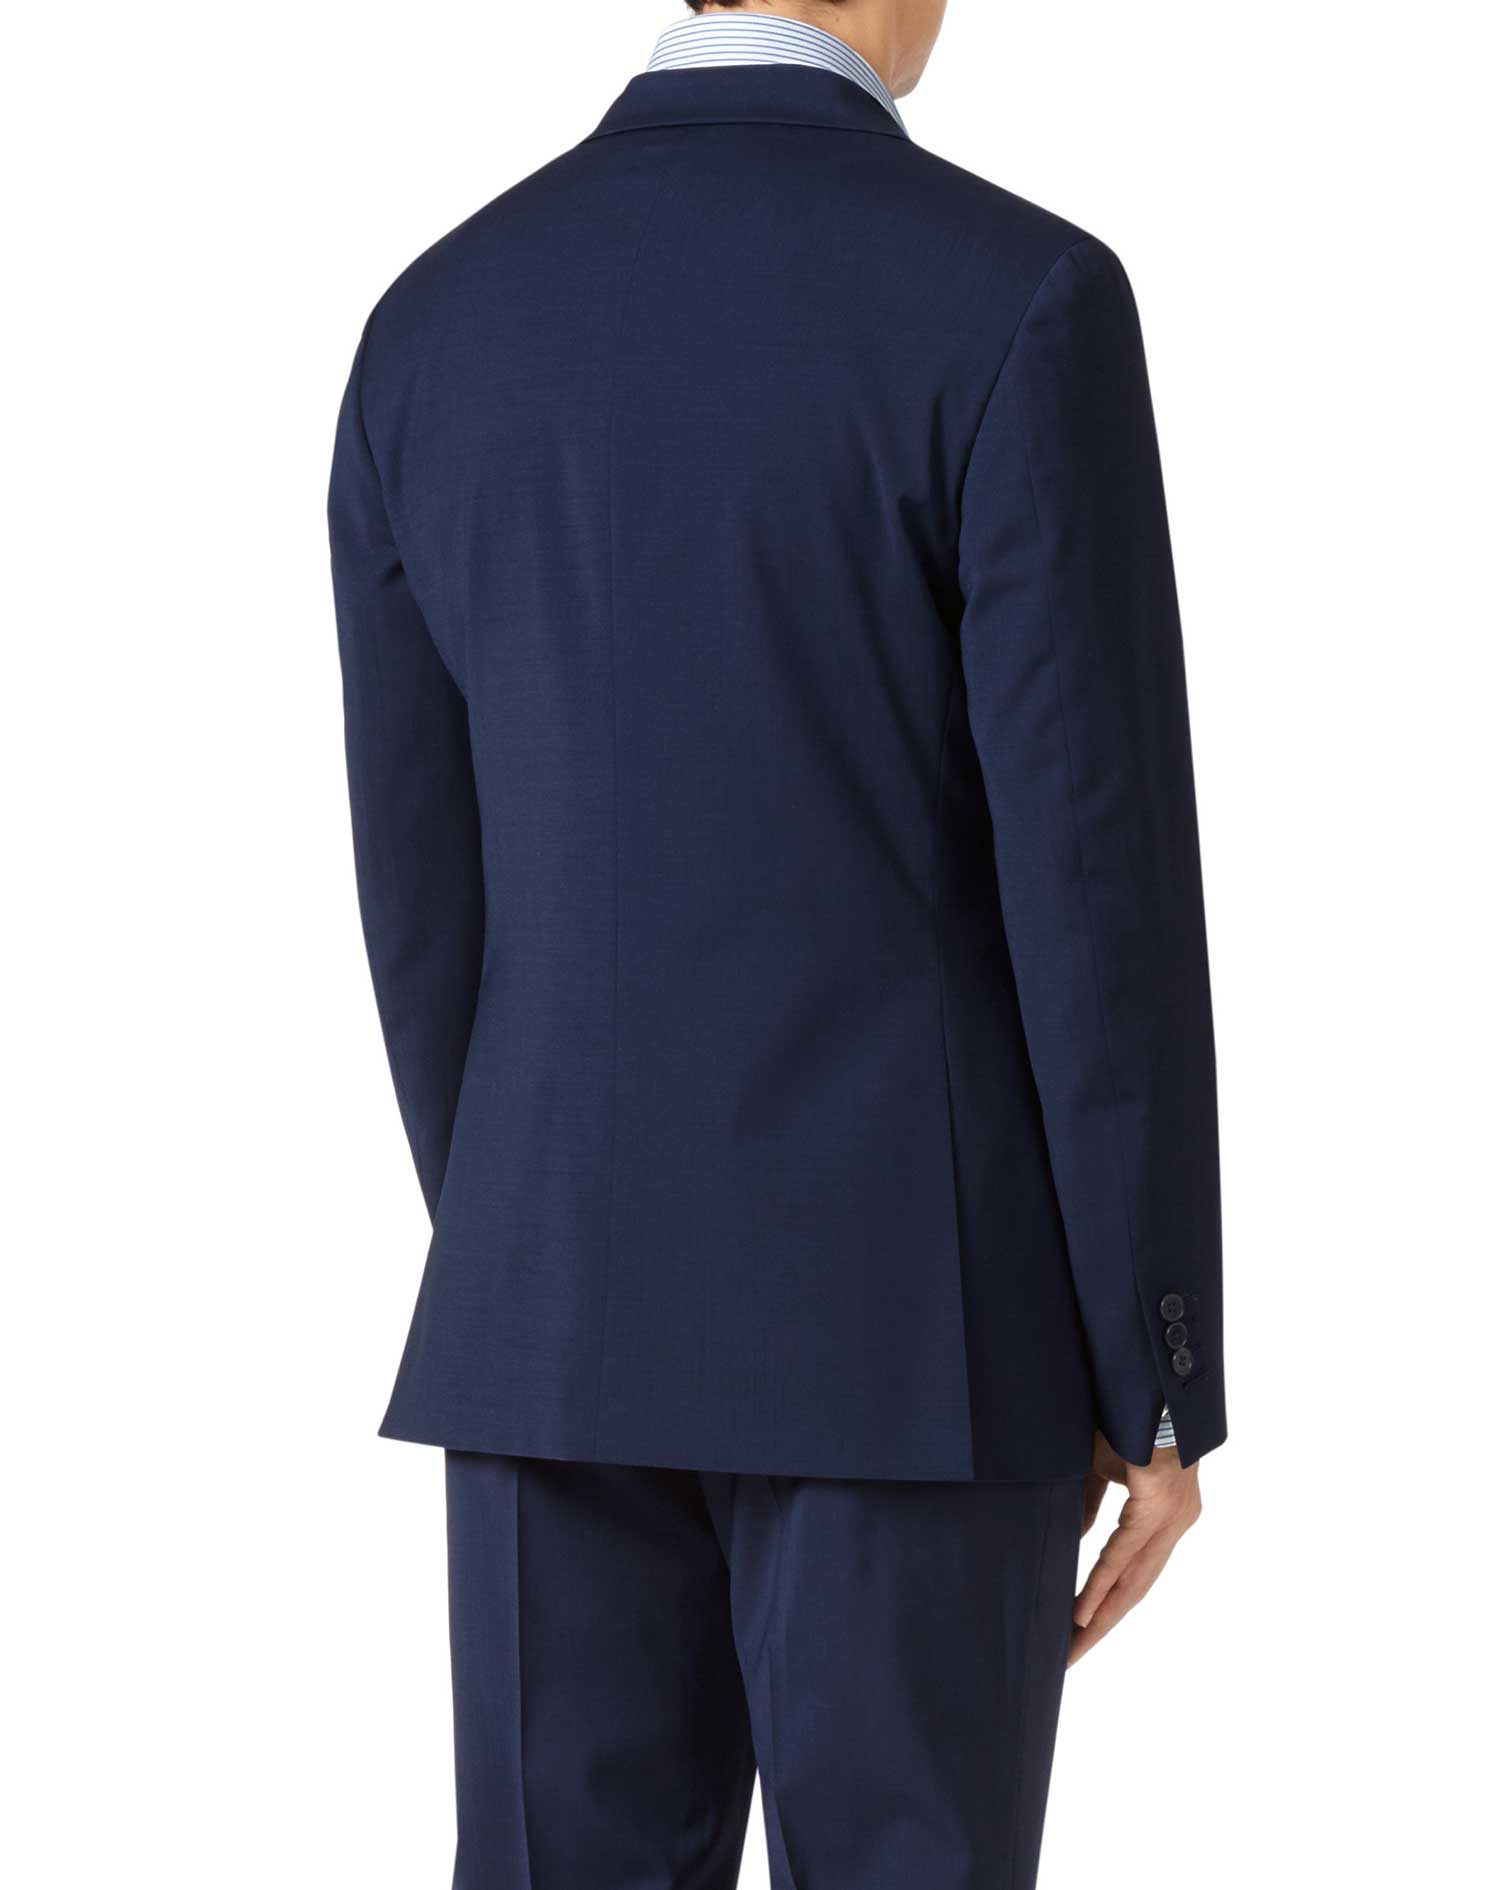 Royal blue slim fit performance suit jacket